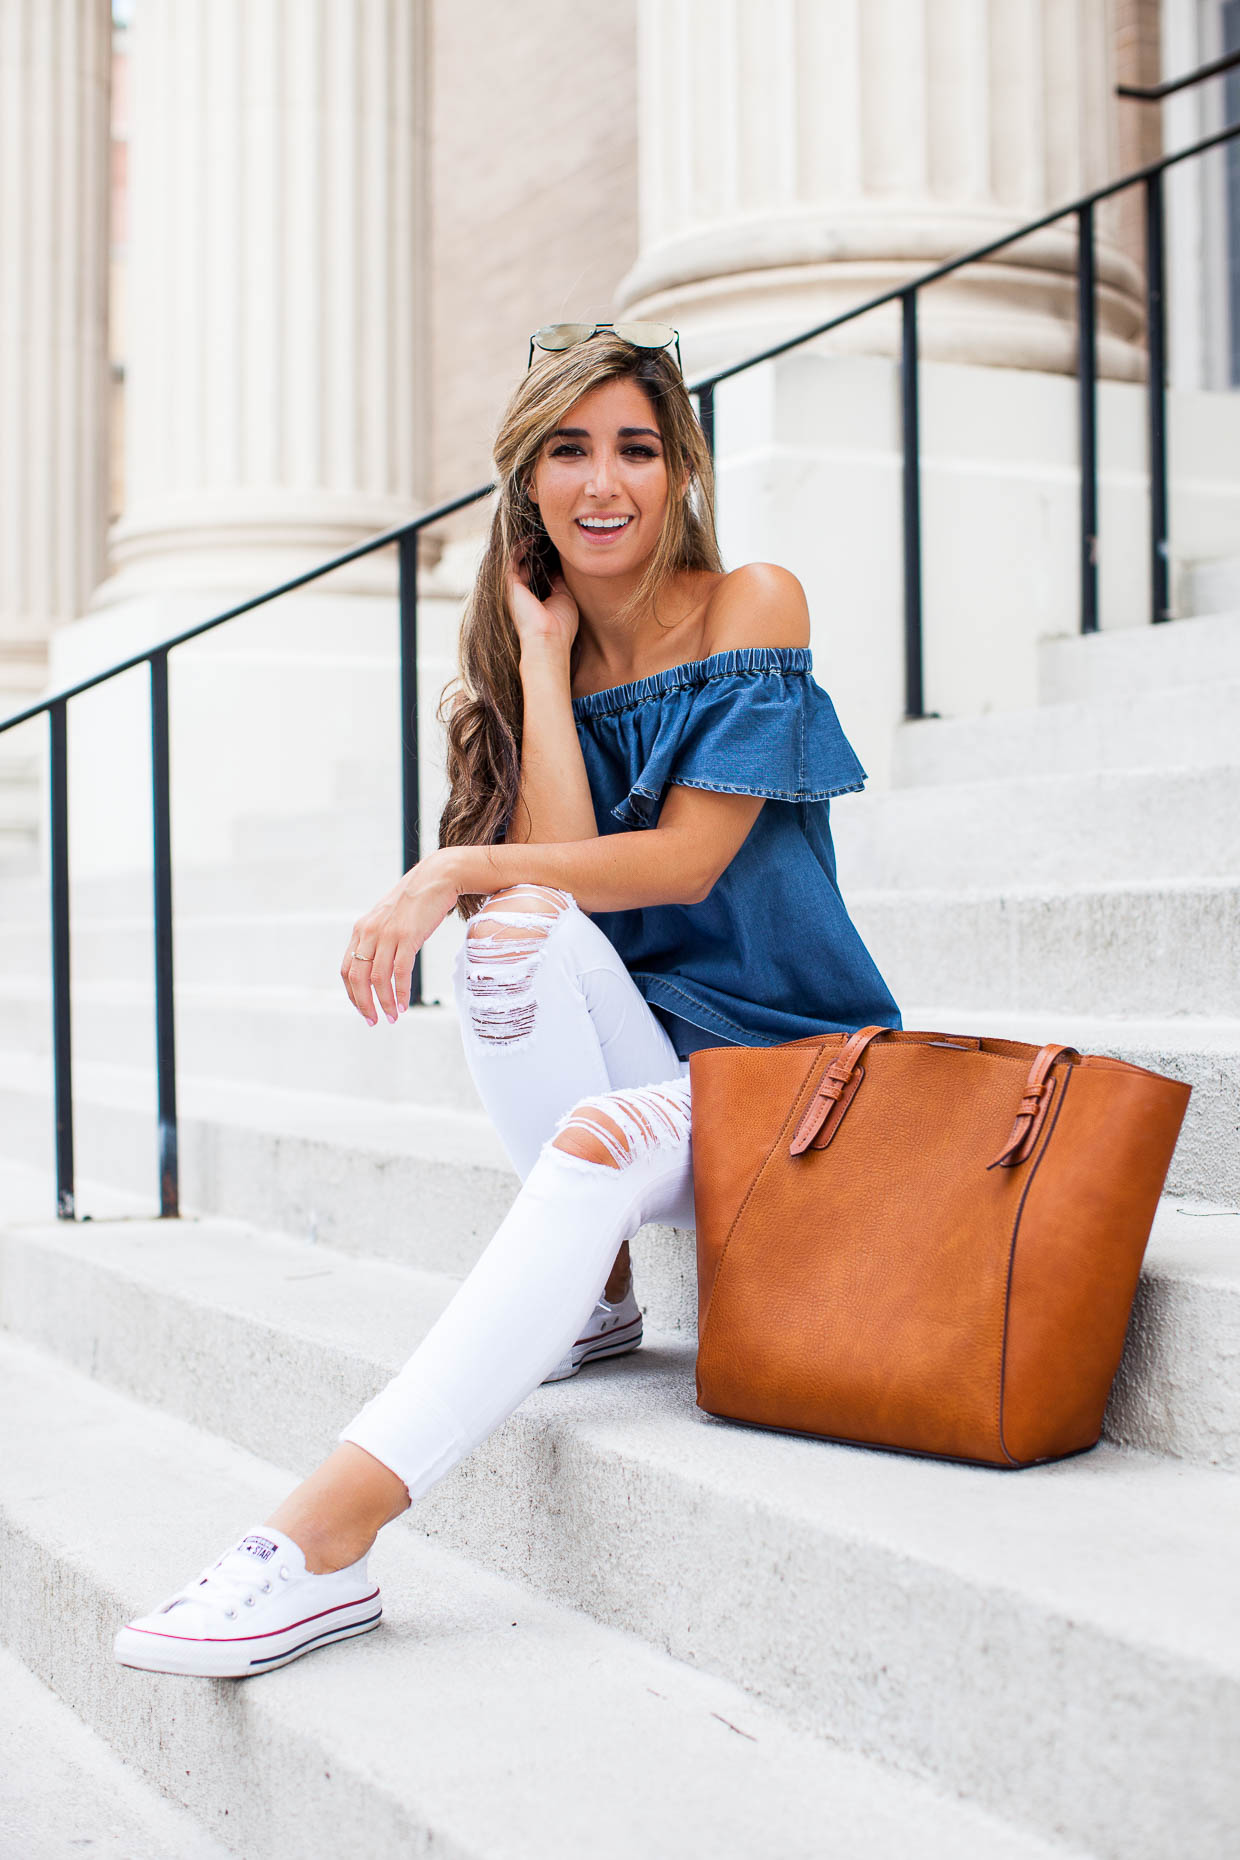 The Darling Detail is wearing a Chelsea28 Off the Shoulder Chambray Top, 'Le Color Rip' Skinny Jeans, Converse 'Shoreline' Sneakers, 'The Prince' 57mm Sunglasses, and carrying a Sole Society Faux Leather Trapeze Tote.